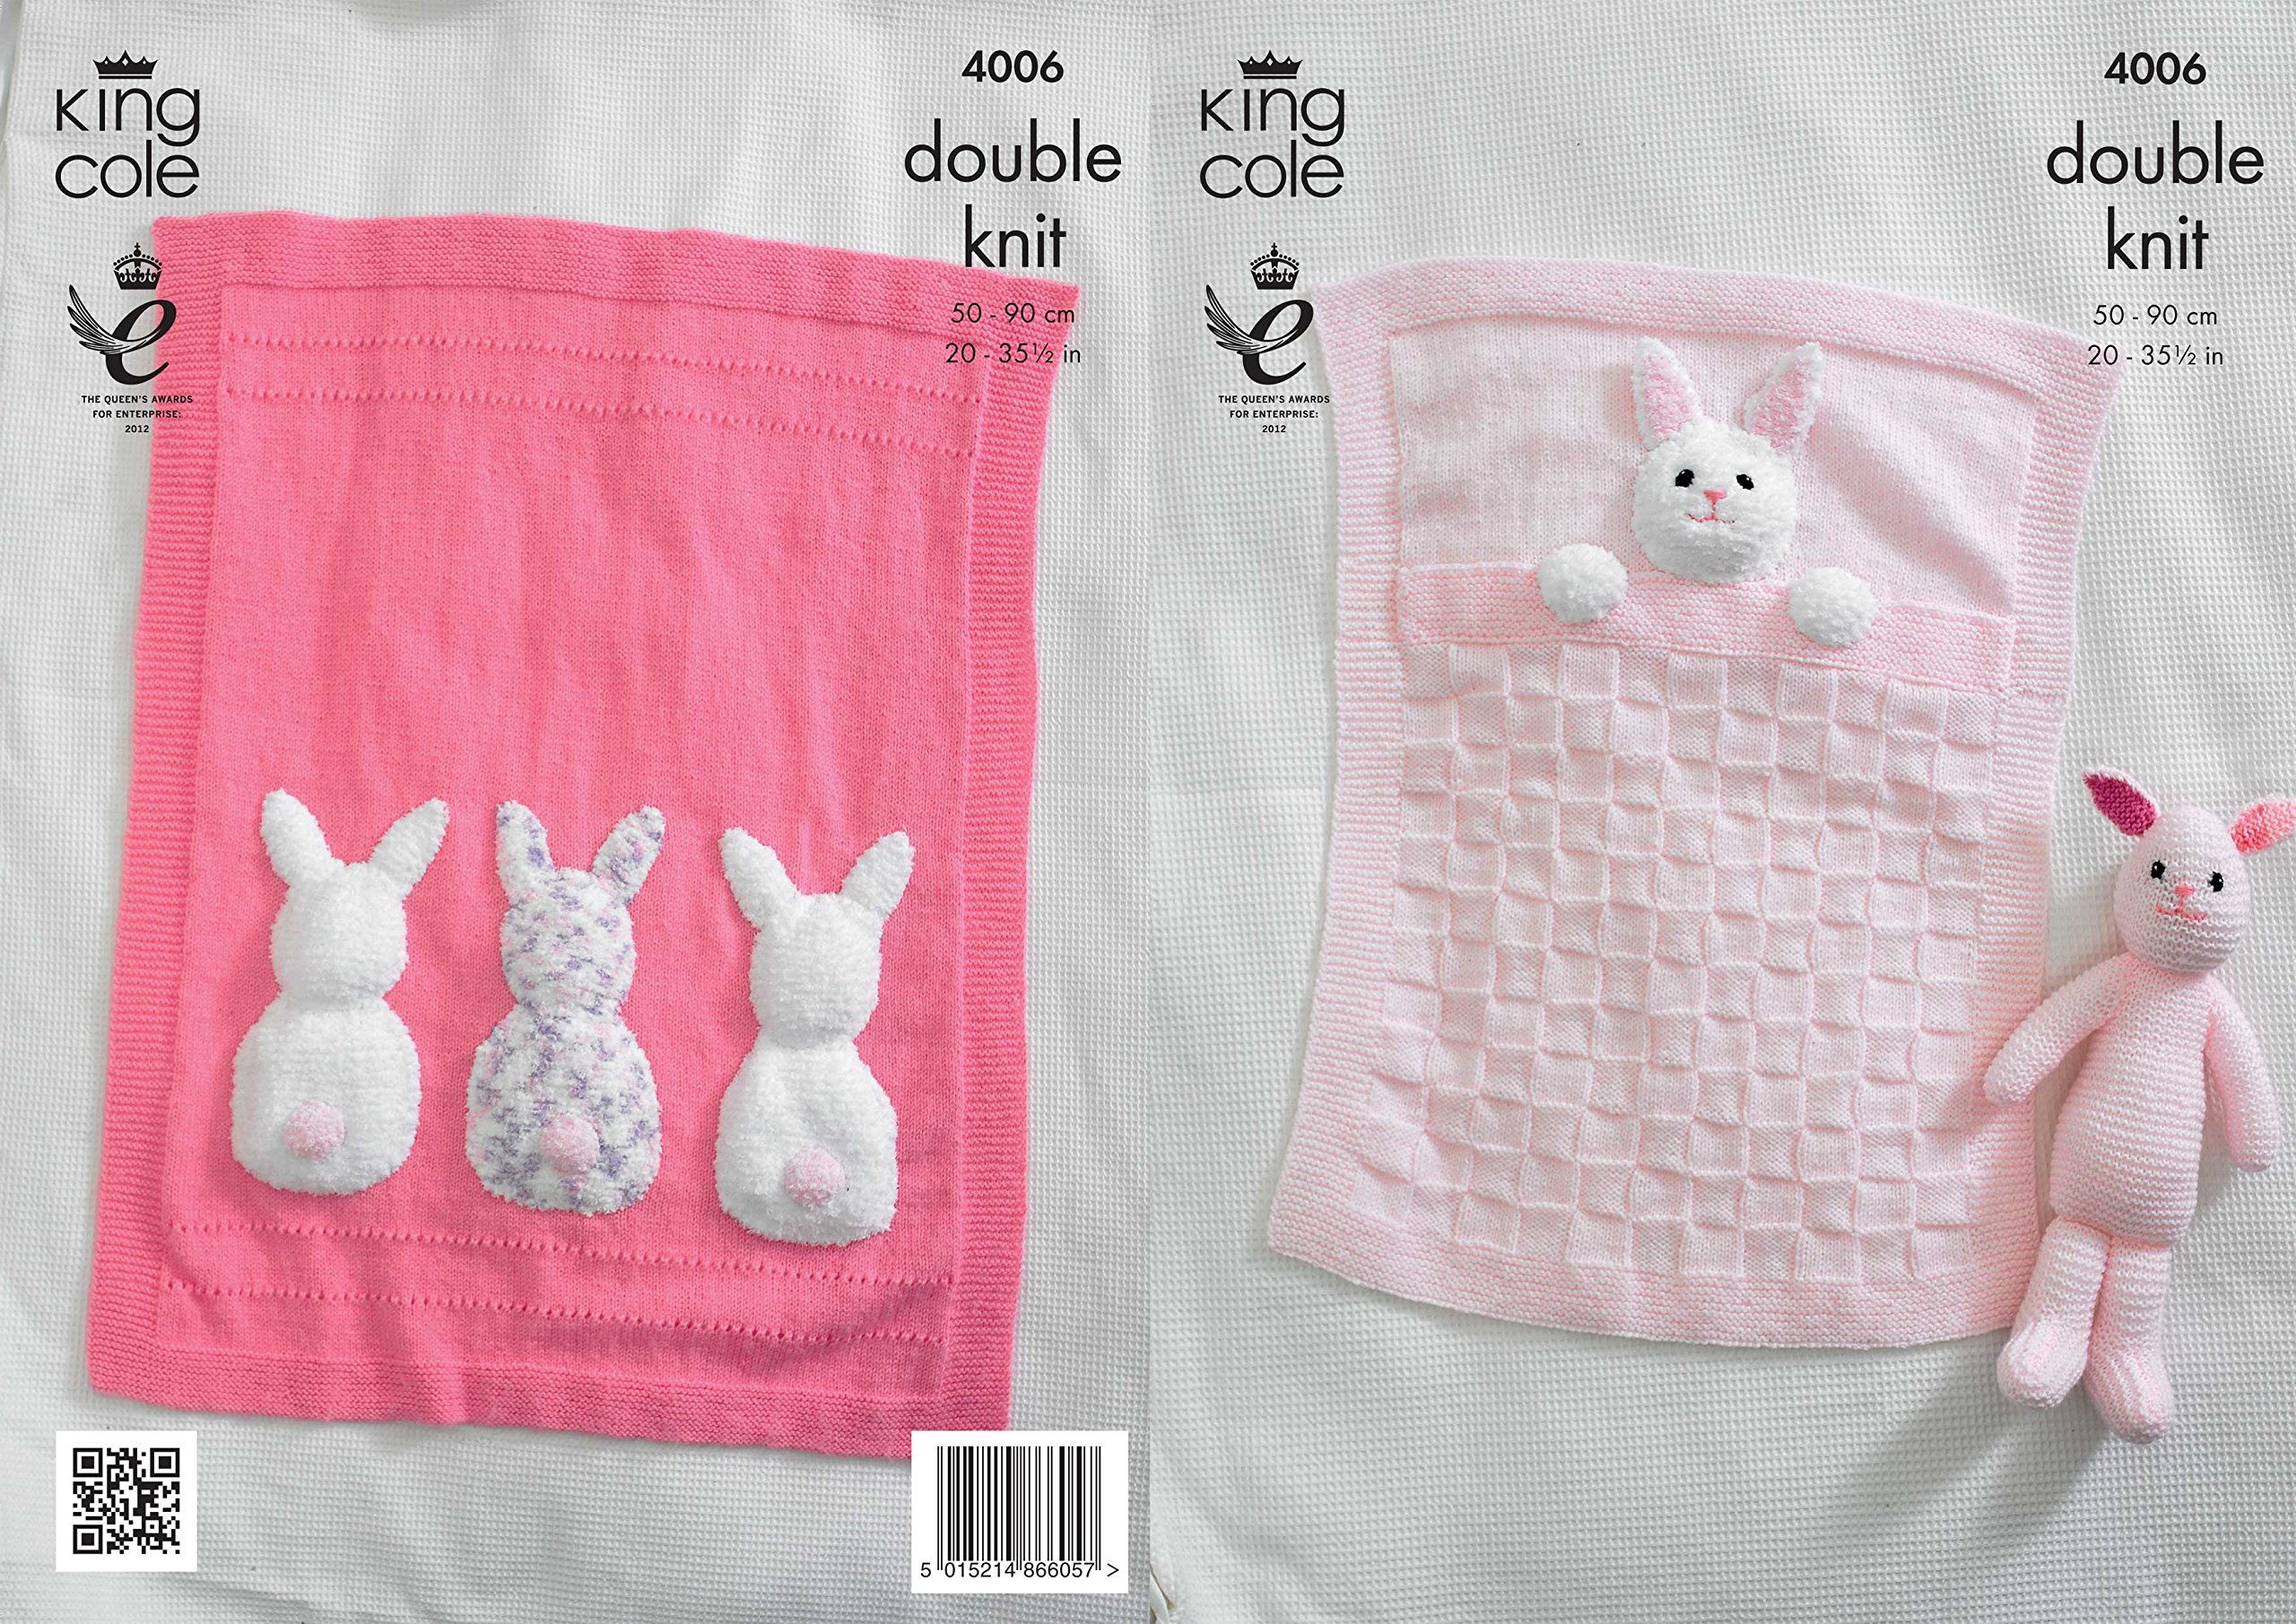 King Cole Double Knitting Pattern for Baby Blankets & Bunny Rabbit Toy Comfort Cuddles DK (4006)